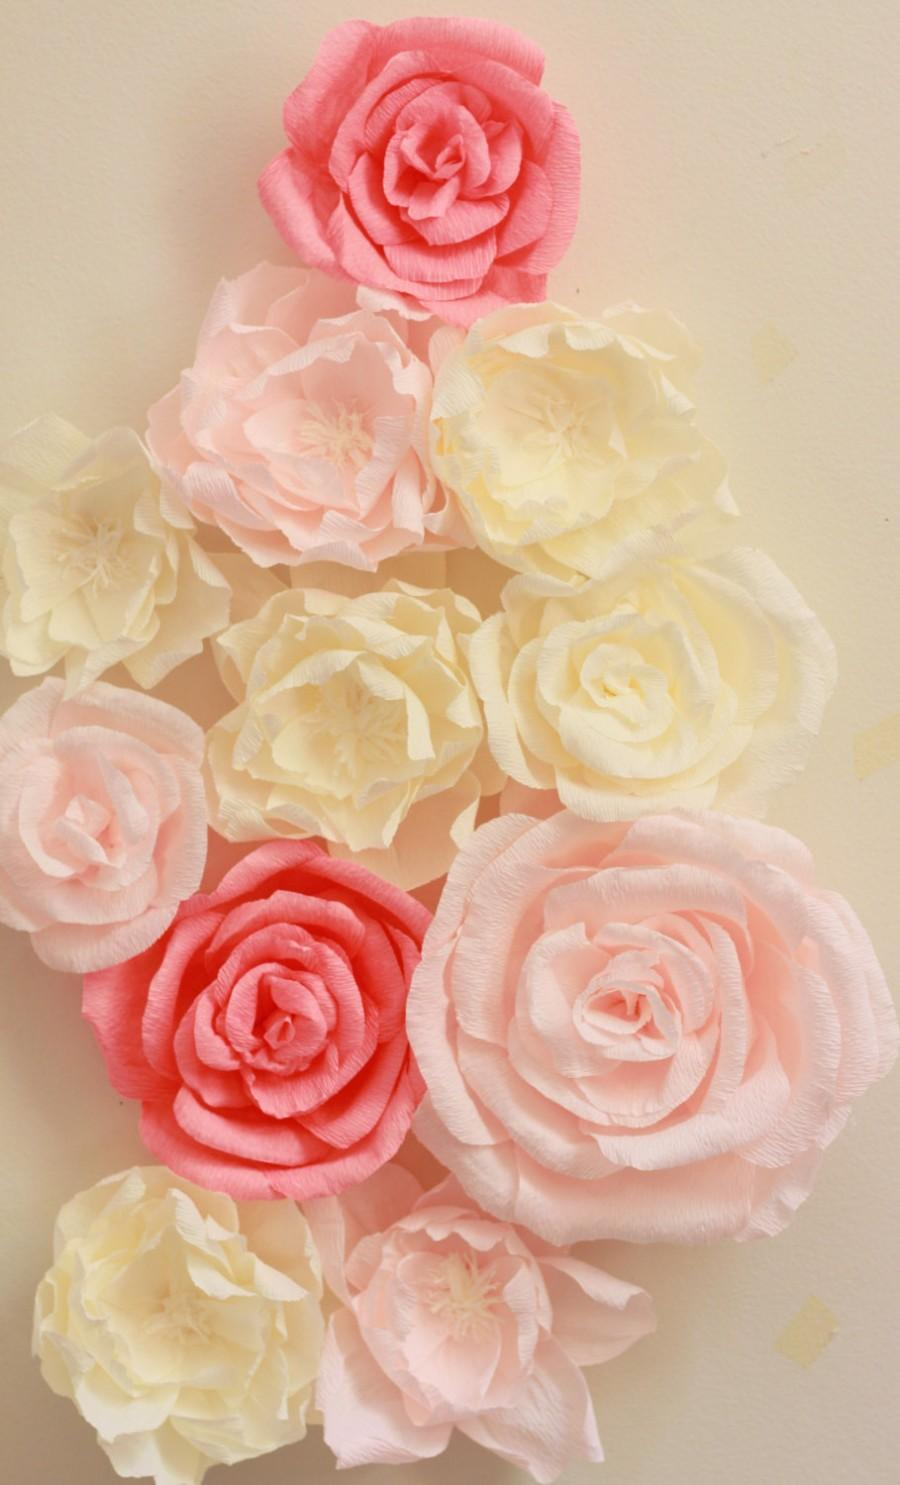 Wedding - Giant paper flower display with roses and peonies. Shop window display. Nursery decor. Flower wall. Paper flower backdrop